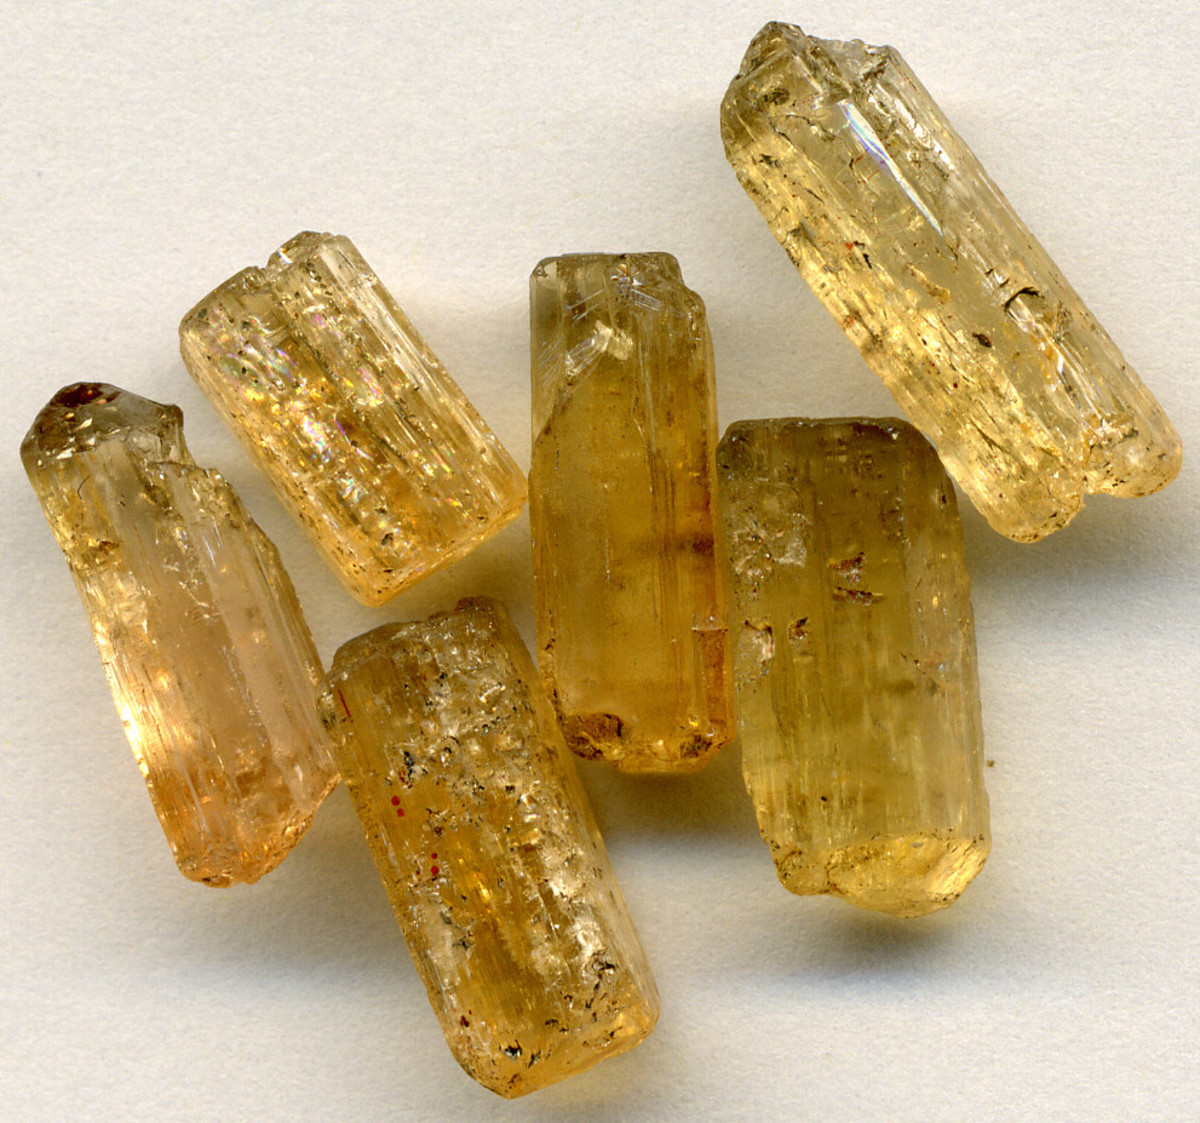 Topaz is a soothing yet motivating crystal to work with.